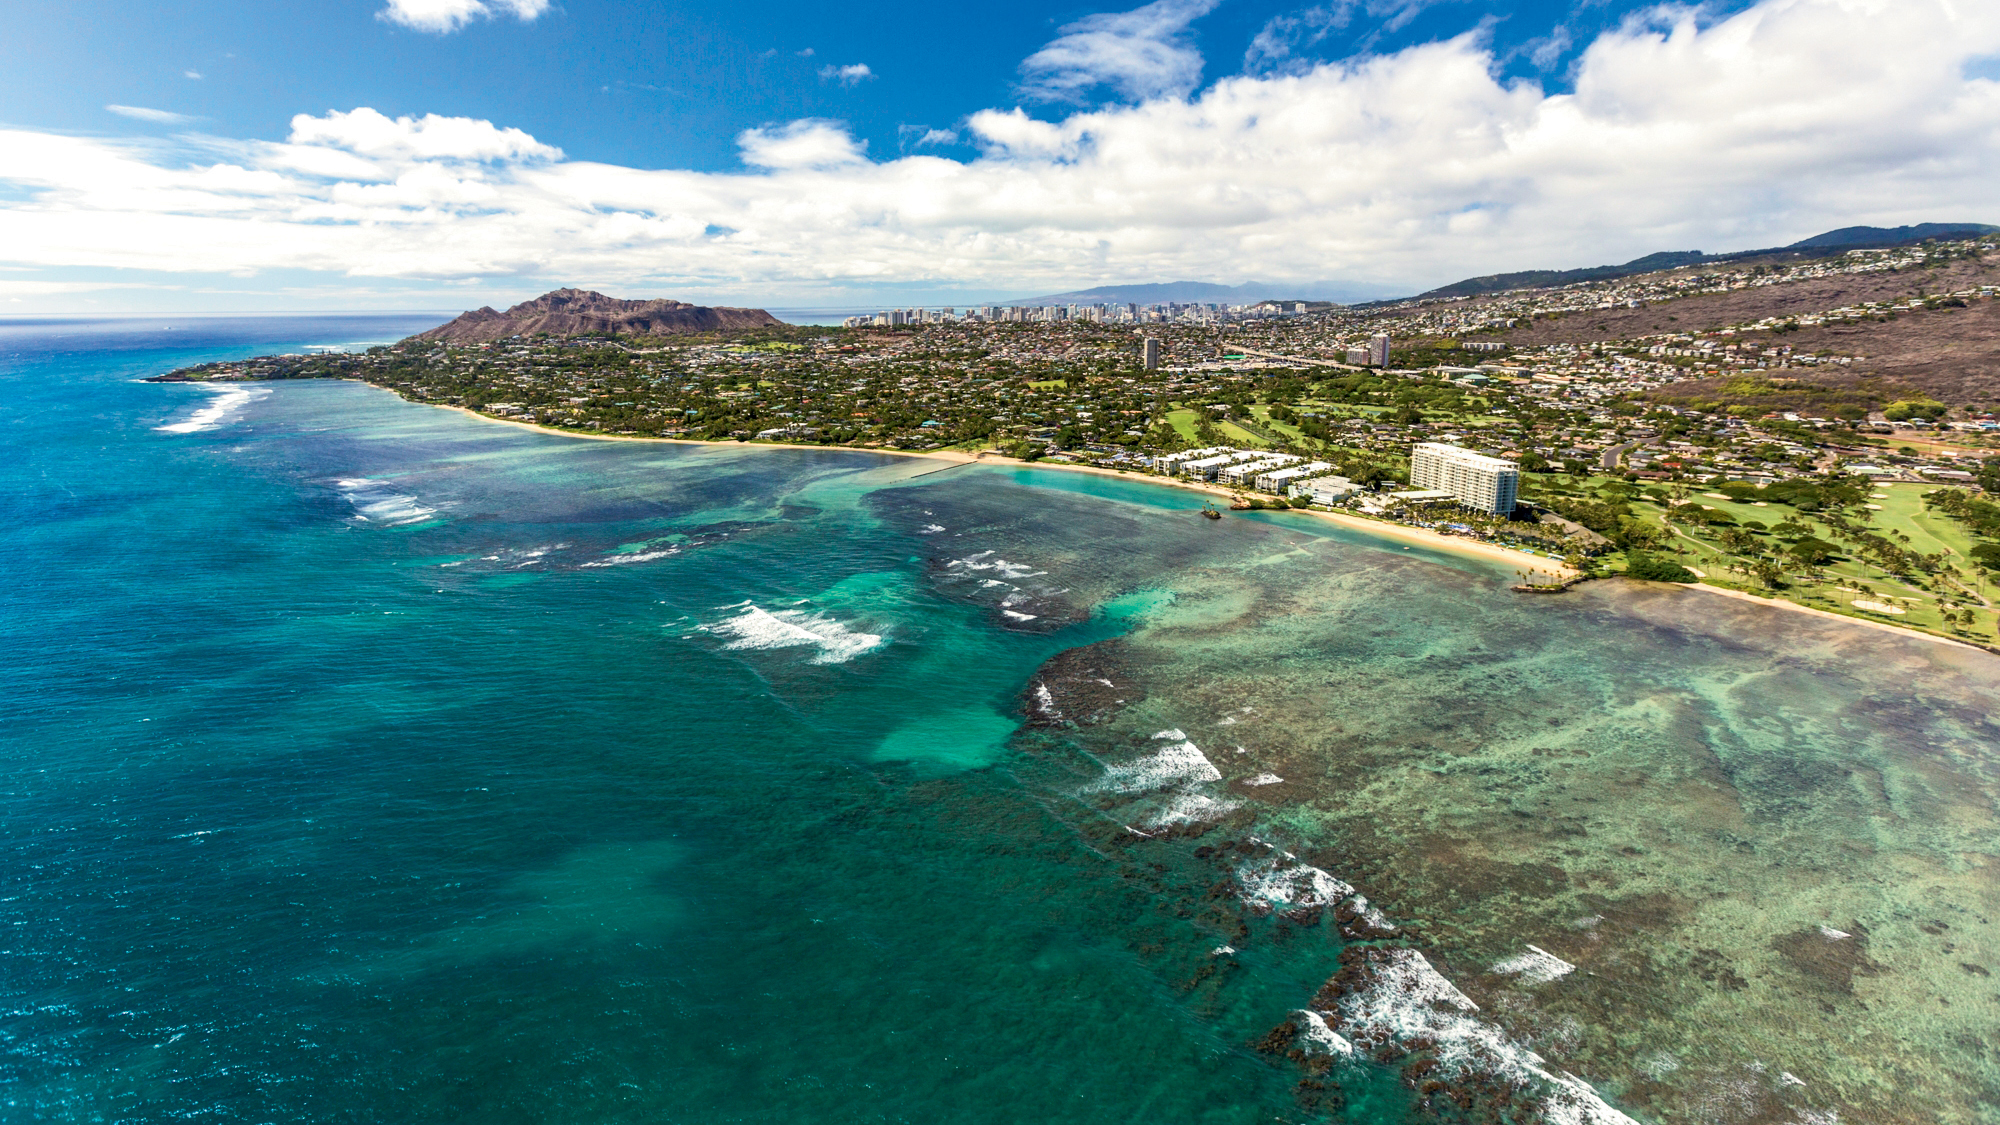 With packages, Hawaii resorts pile on perks for families